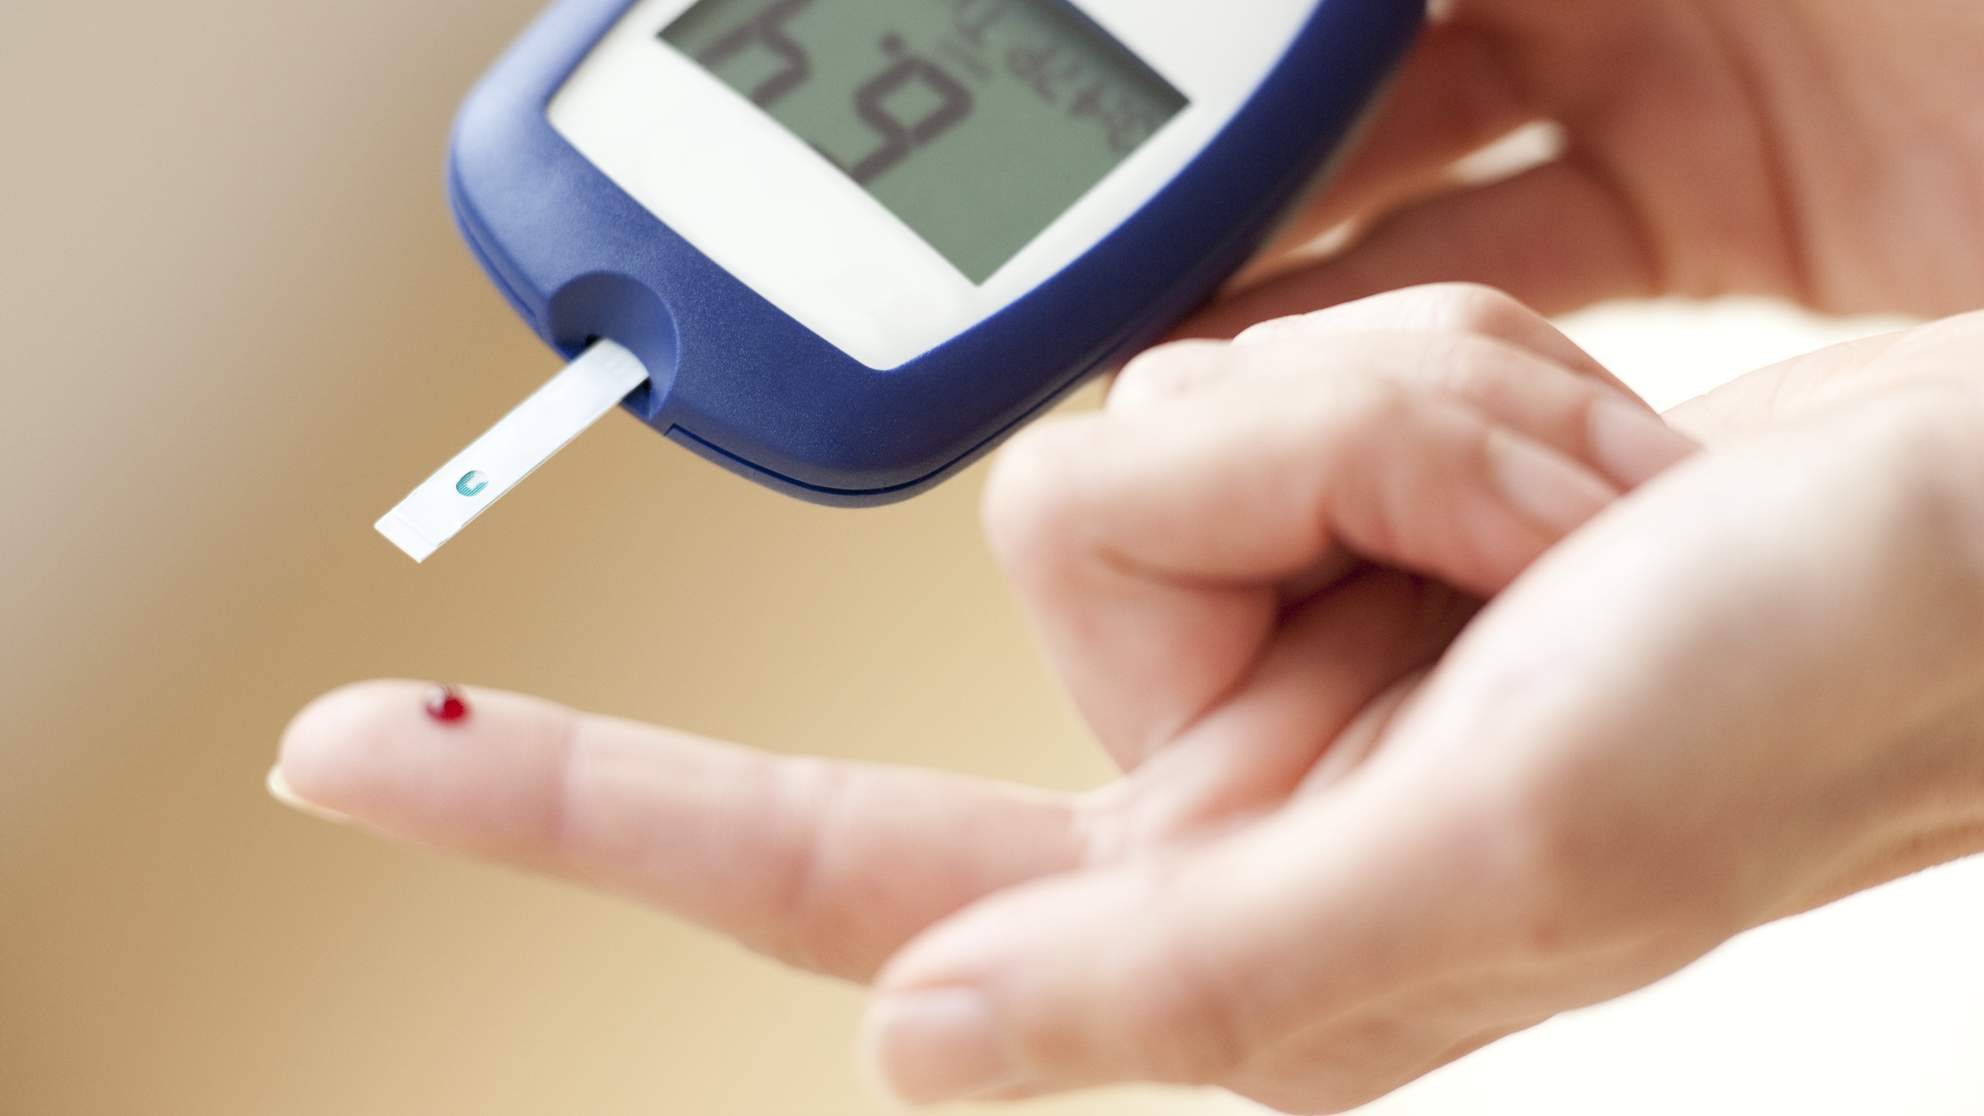 Study Identifies Five Types of Diabetes, Not Just Two